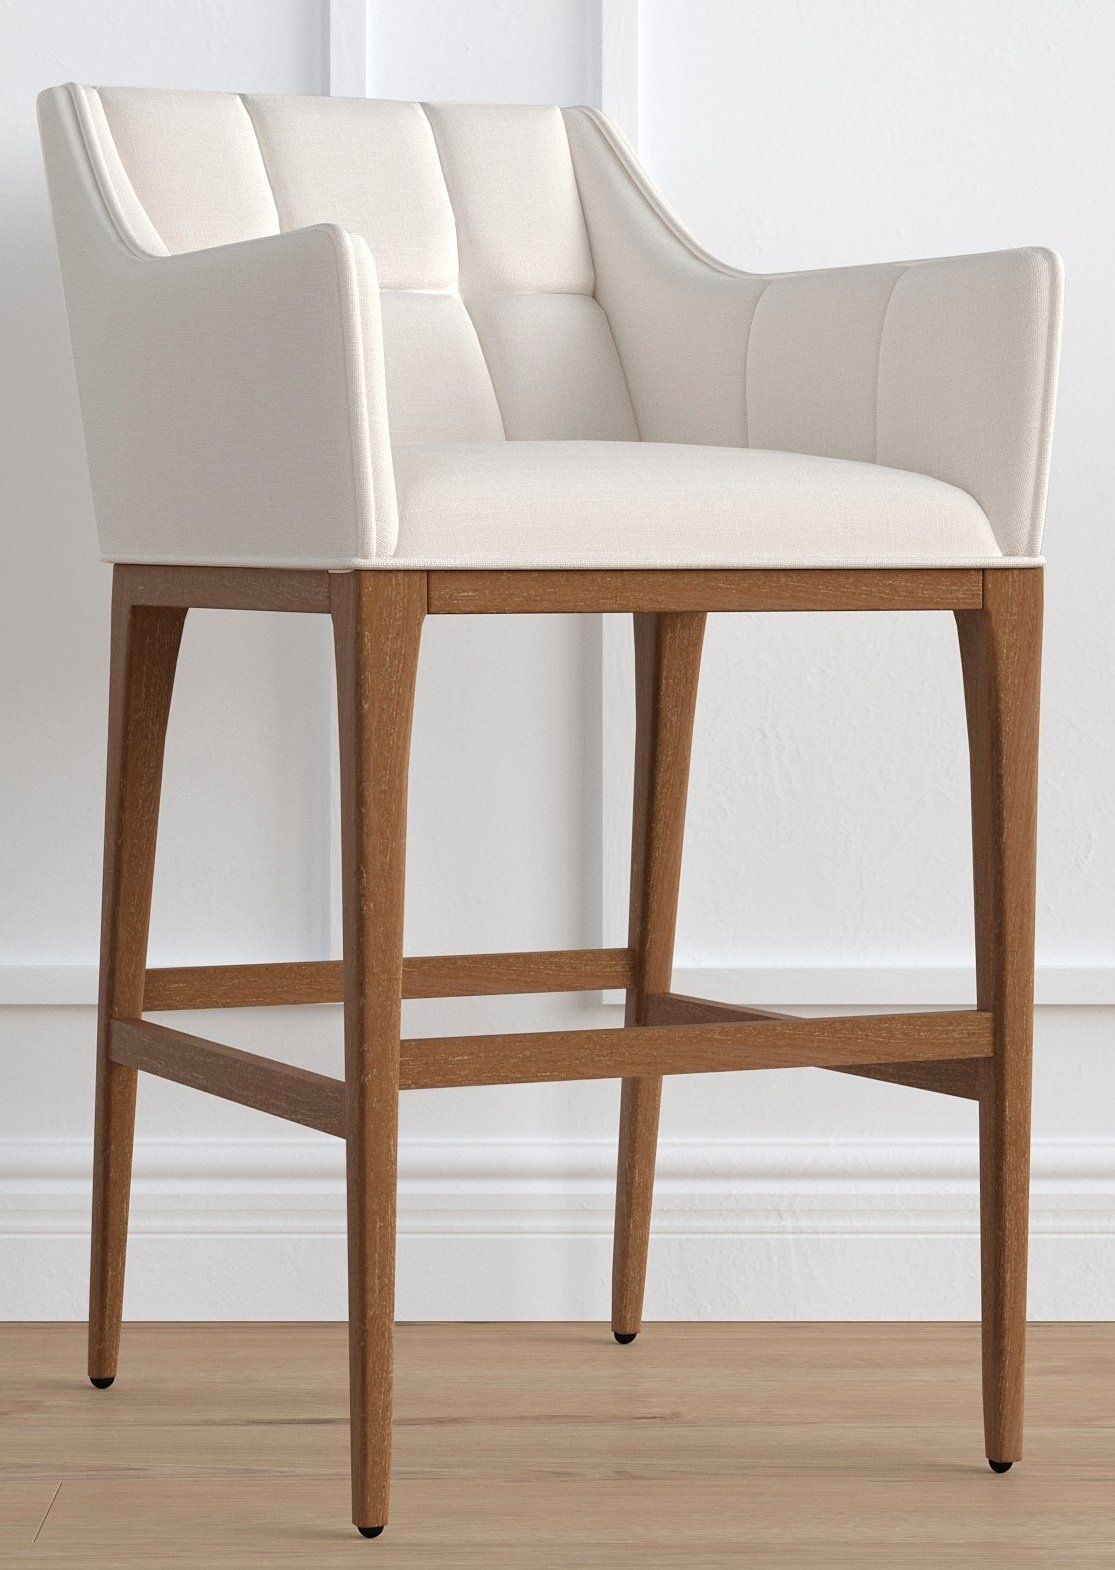 Gramercy Bar Stool With Arms In Sandstone Finish 30 With Images